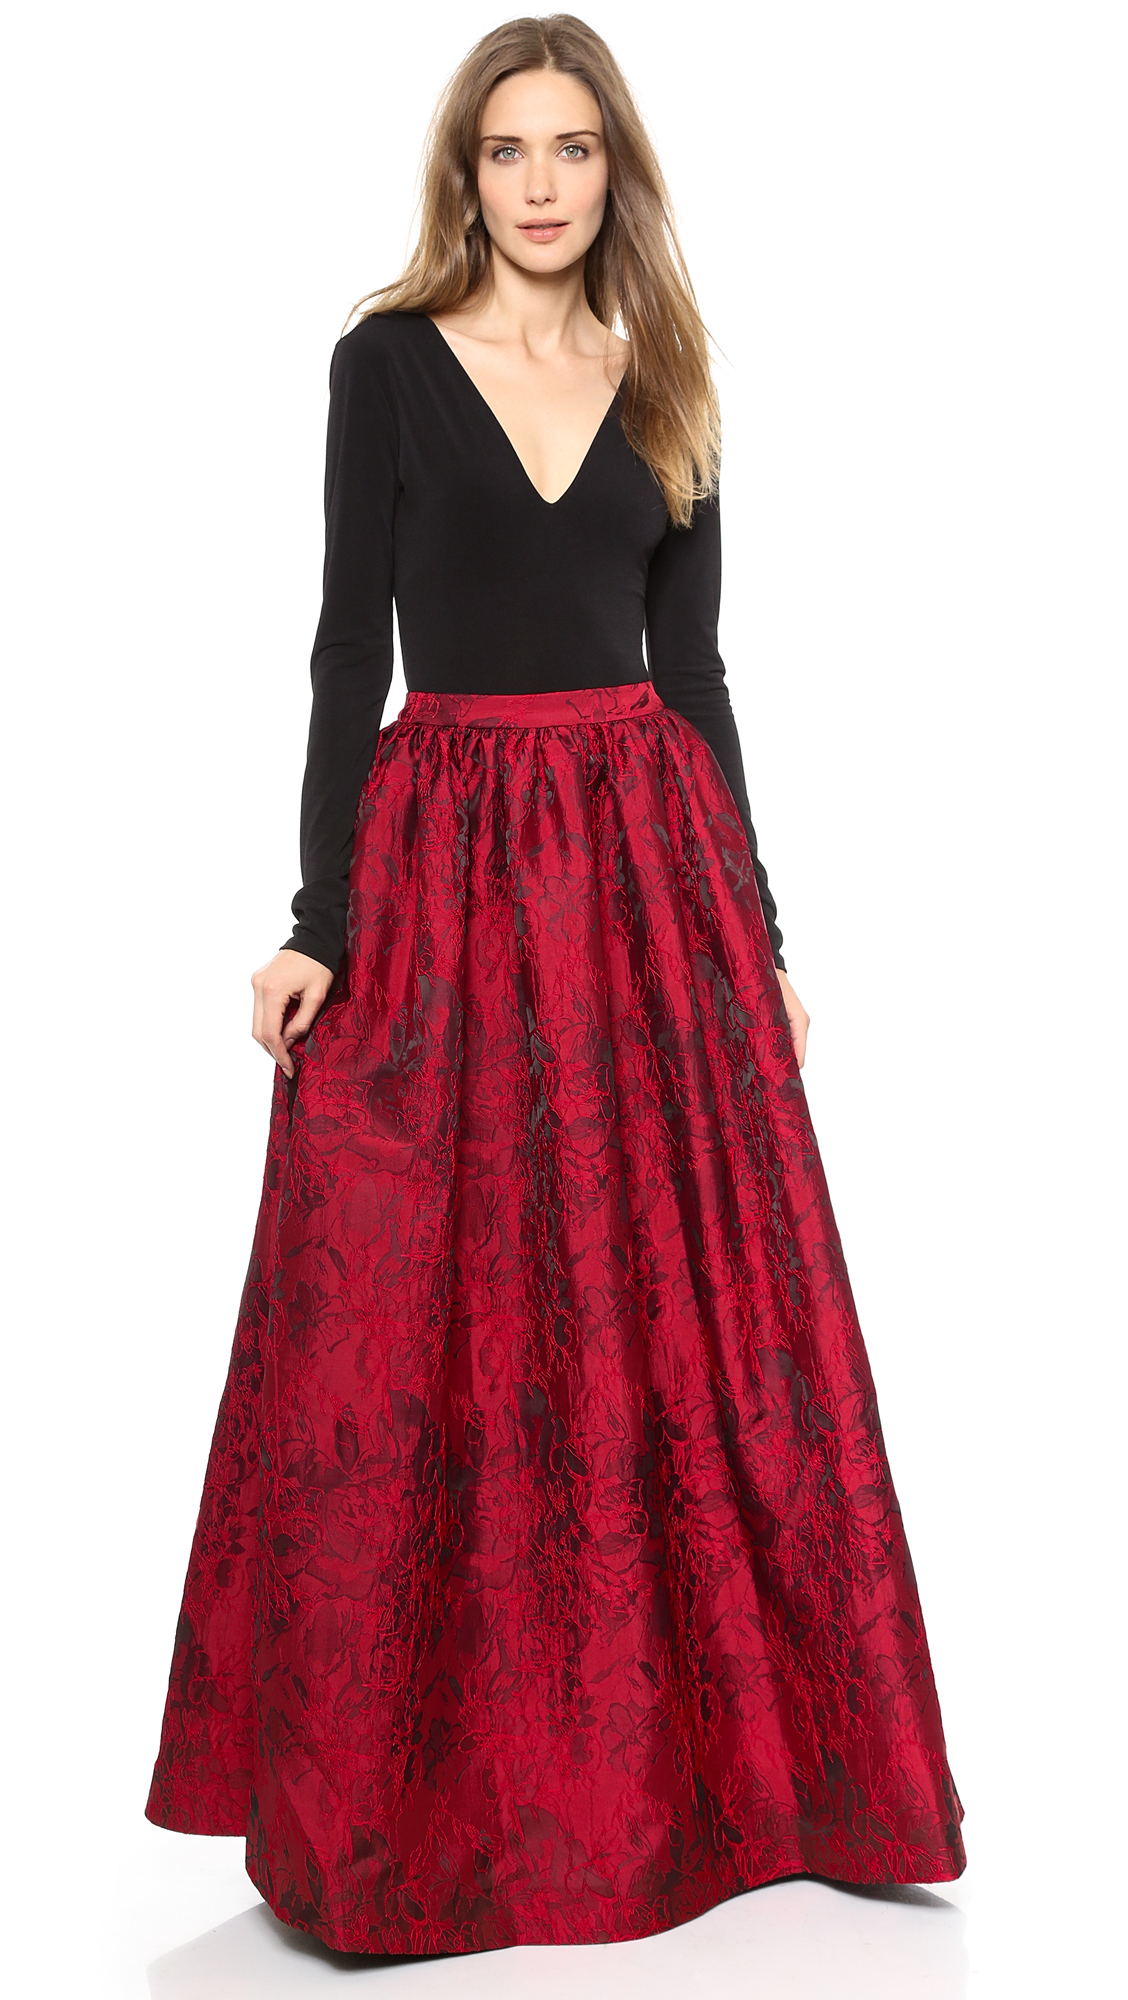 Lyst - Alice + Olivia Alice + Olivia Ball Gown Skirt - Royal Red in Red